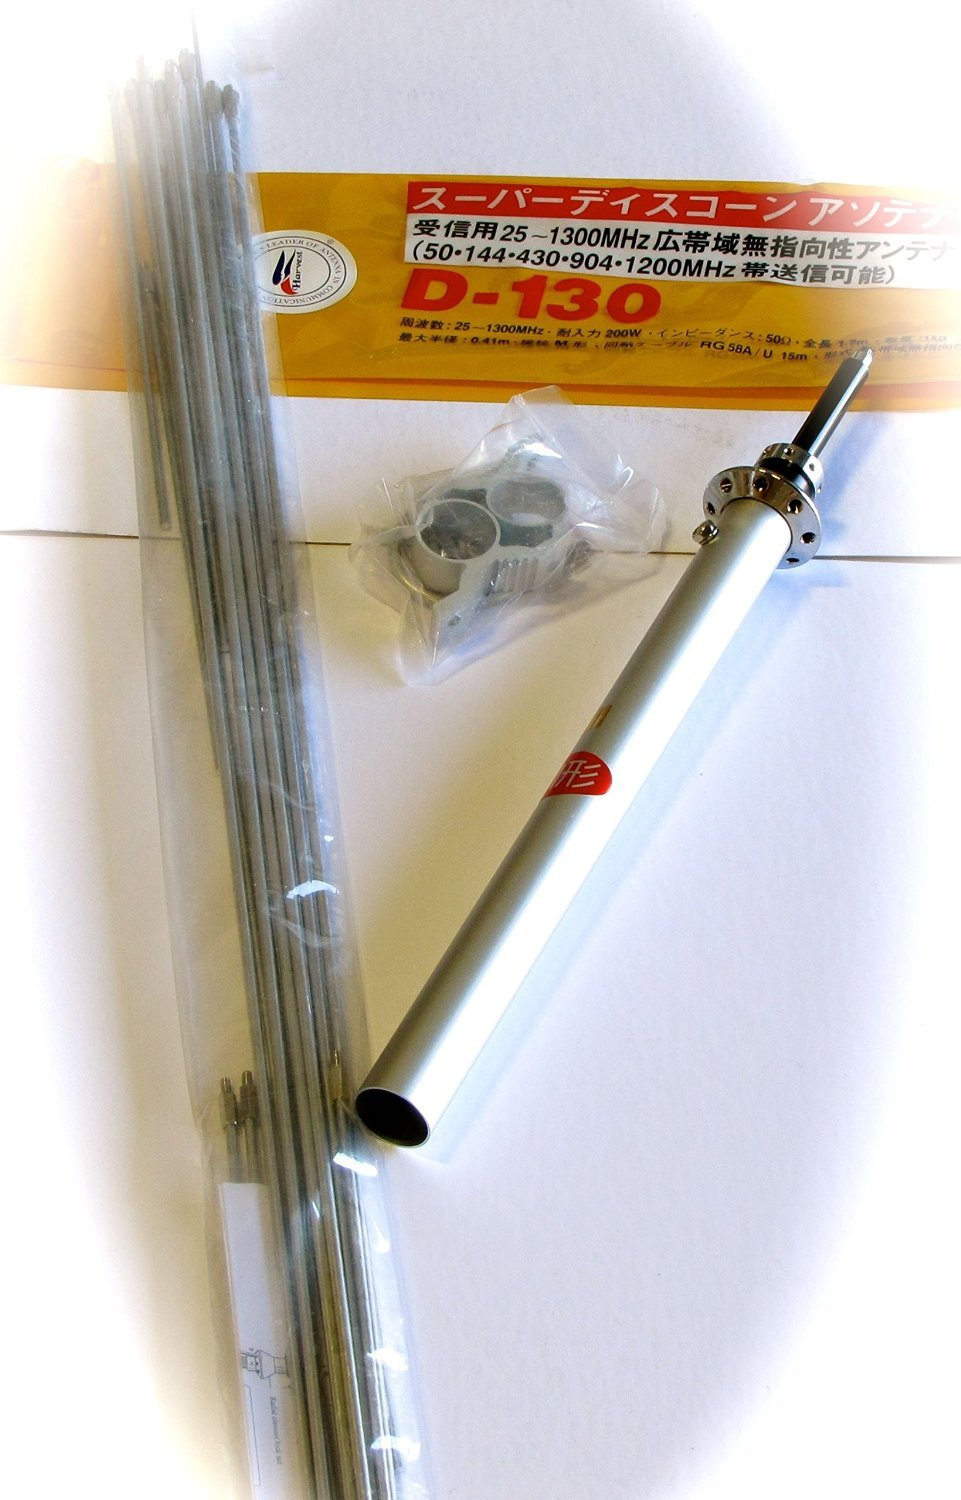 Harvest D130N 25-1300mhz Discone Wide Band Base antenna - N connector